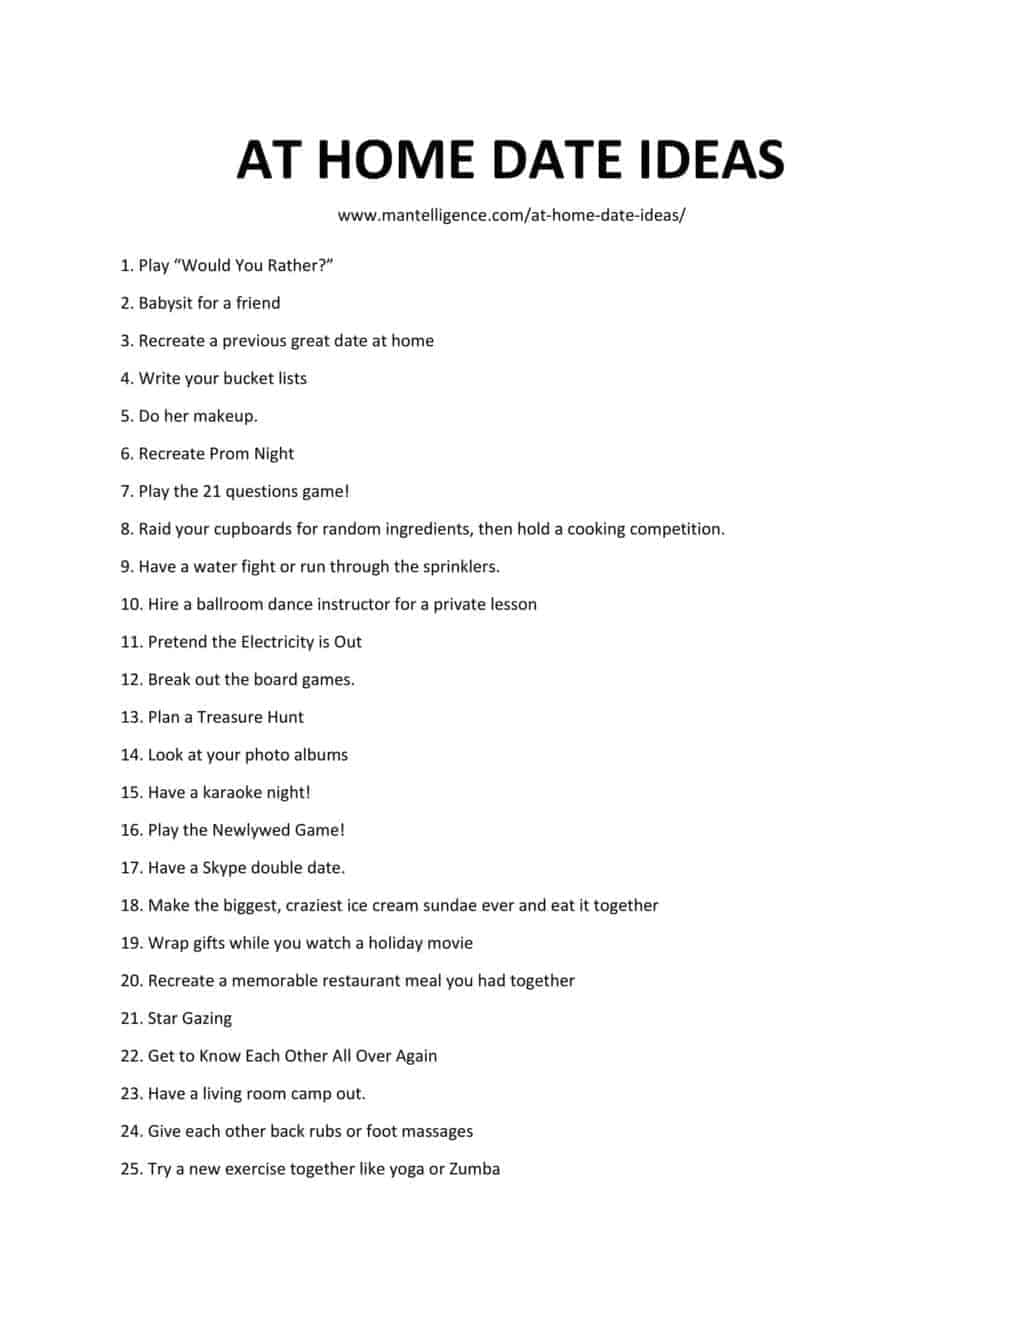 Downloadabli List of At Home Date Ideas